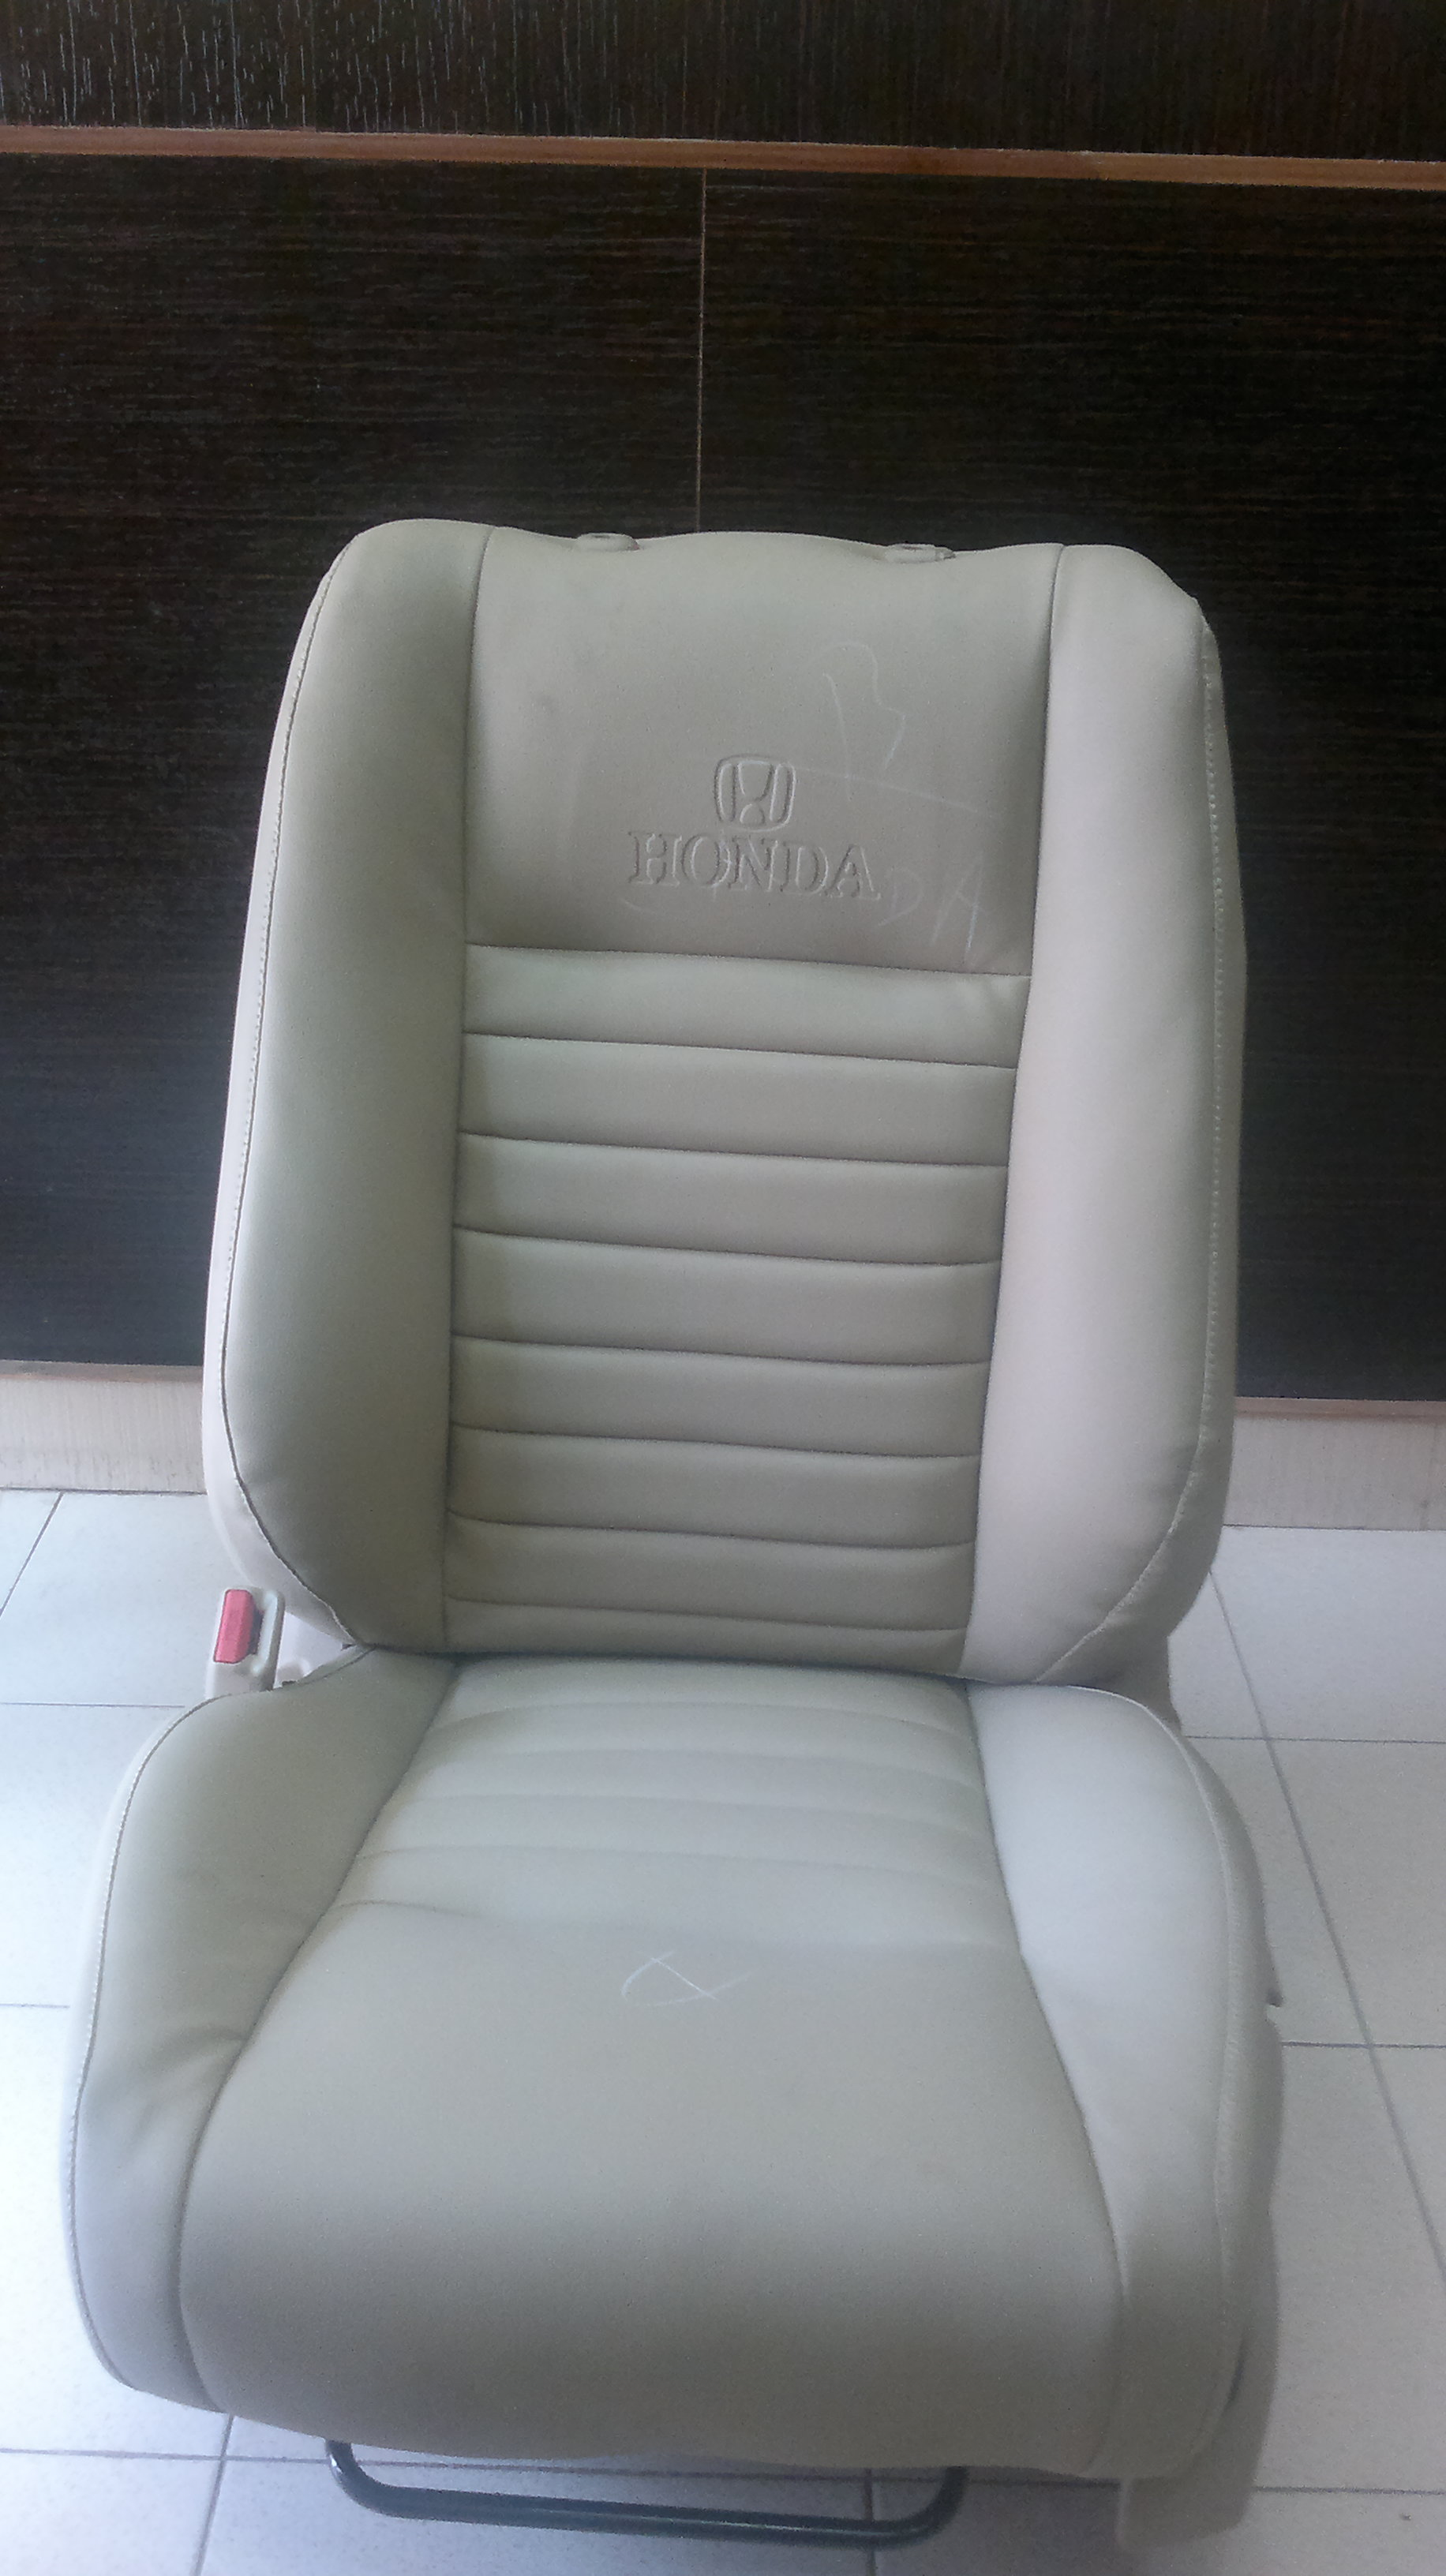 Honda City Car Seat Covers Prices In India Shopclues